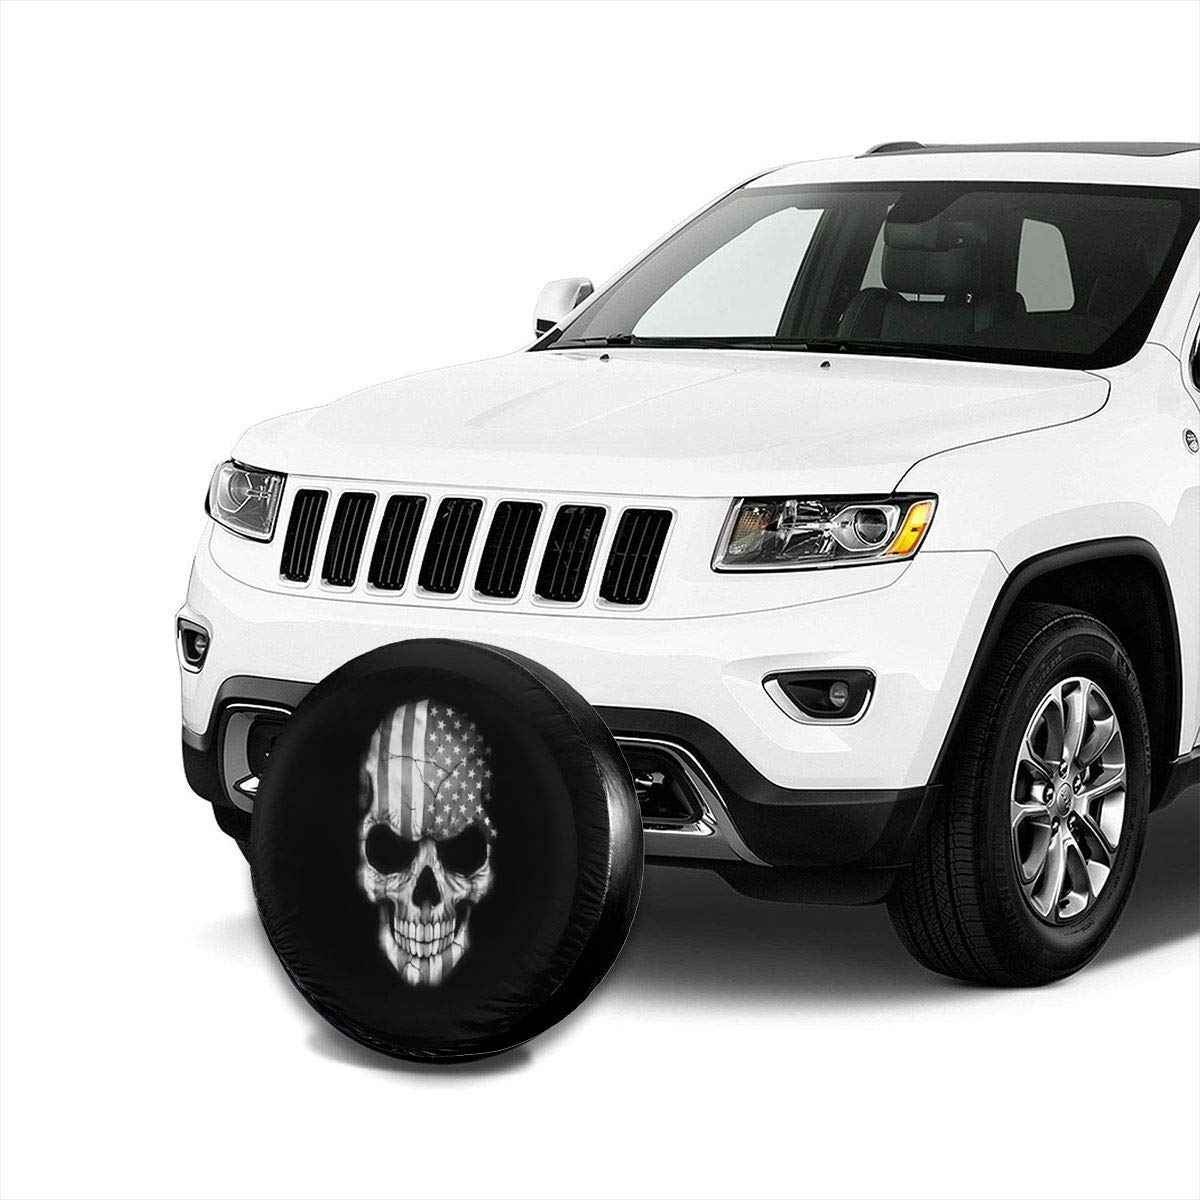 Vbnbvn Reserveradabdeckung Black and White Skull Flag Polyester Universal Waterproof Sunscreen Wheel Covers for Jeep Trailer RV SUV Truck and Many Vehicles 14 15 16 17